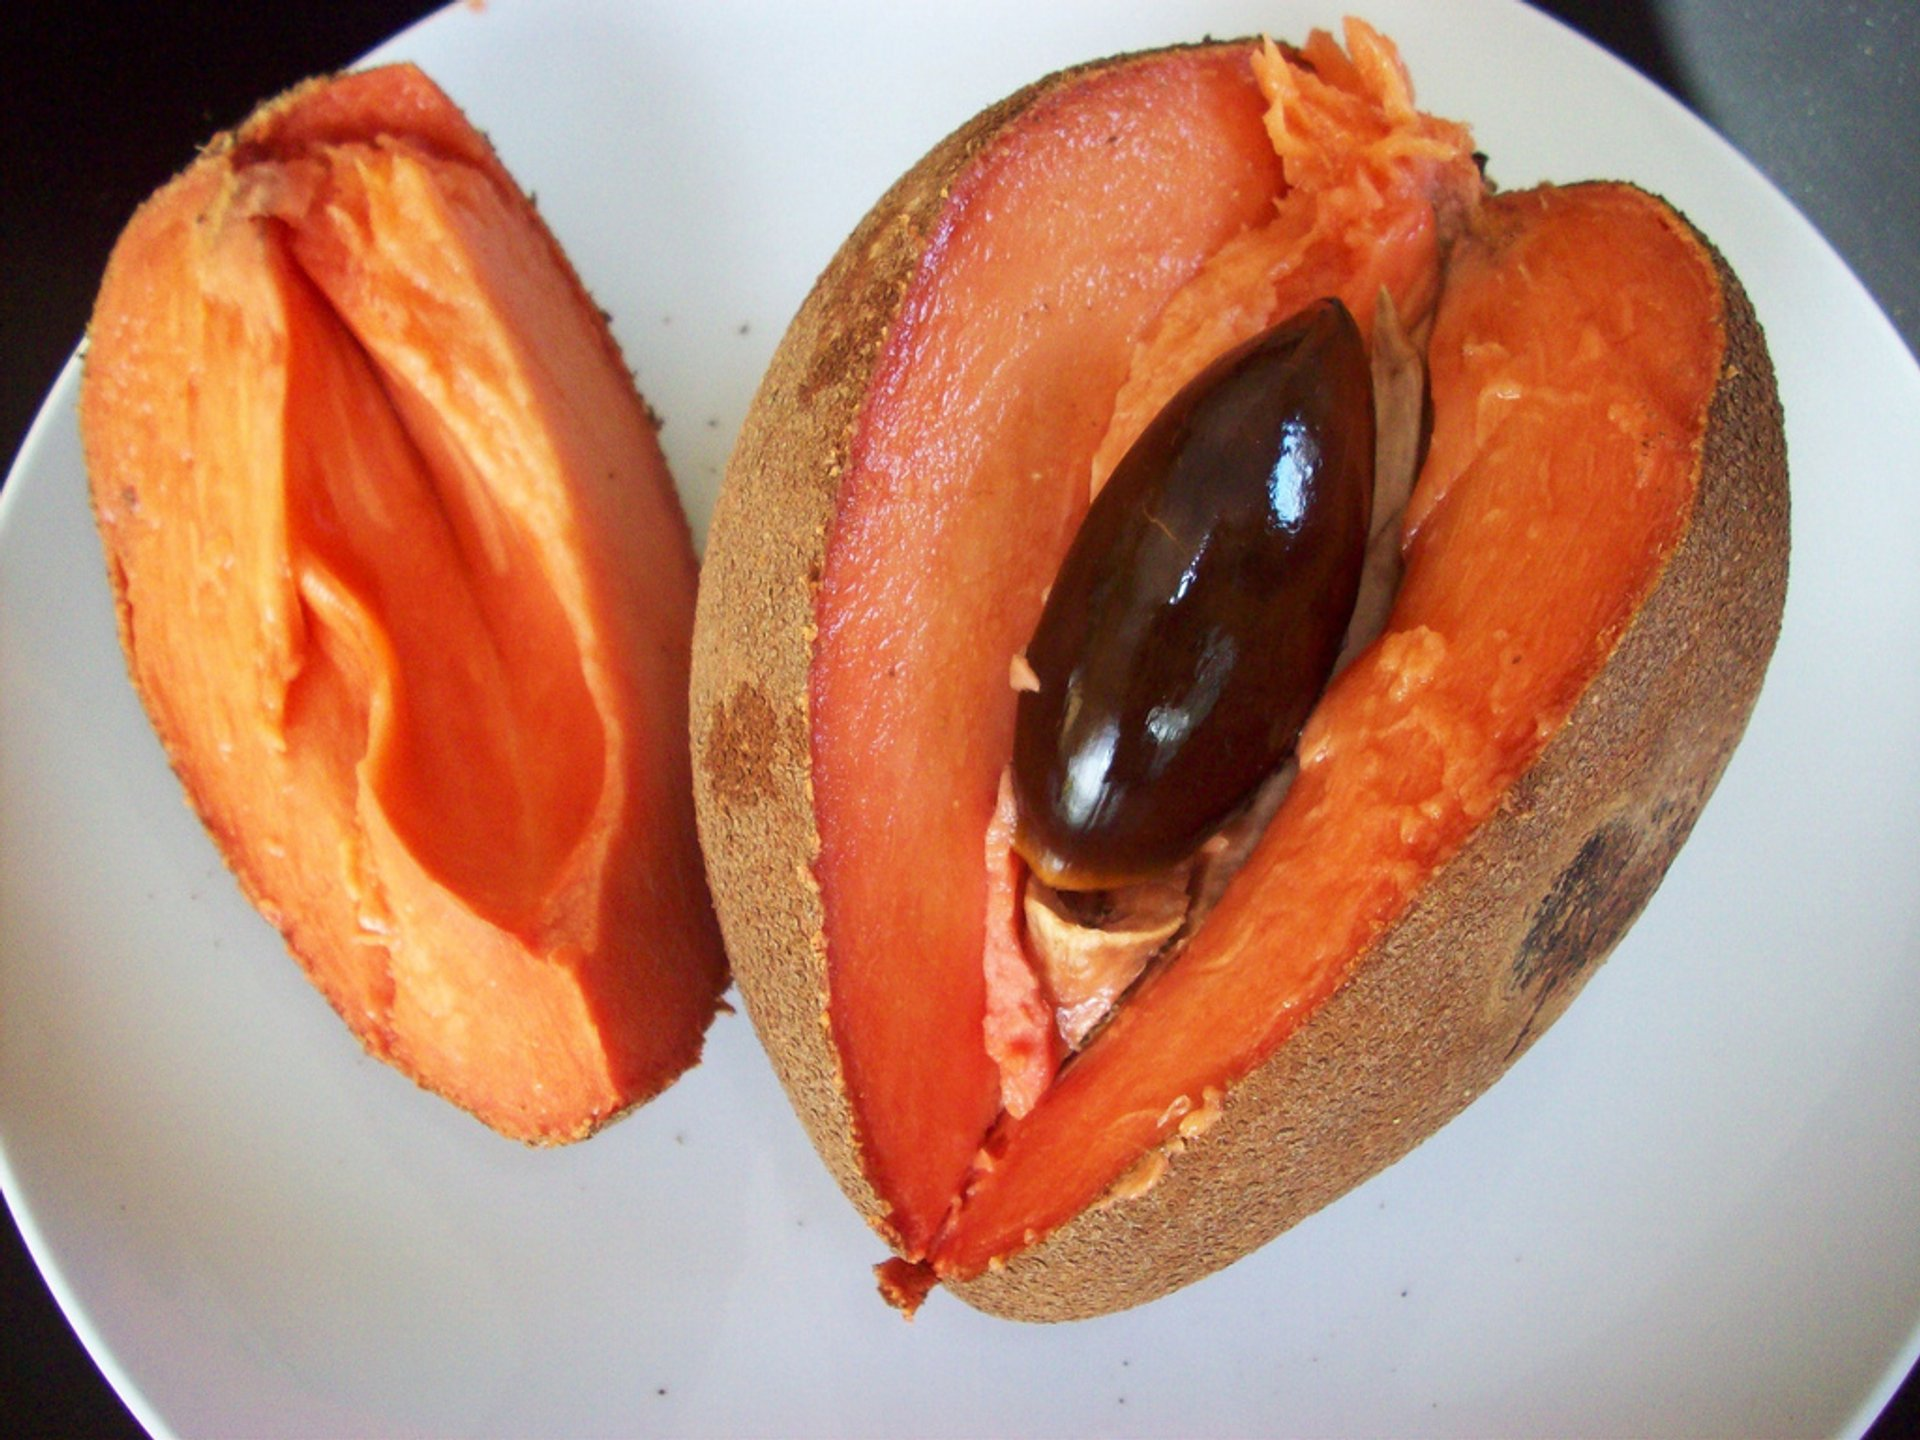 Mamey Sapote Harvest in Miami 2019 - Best Time